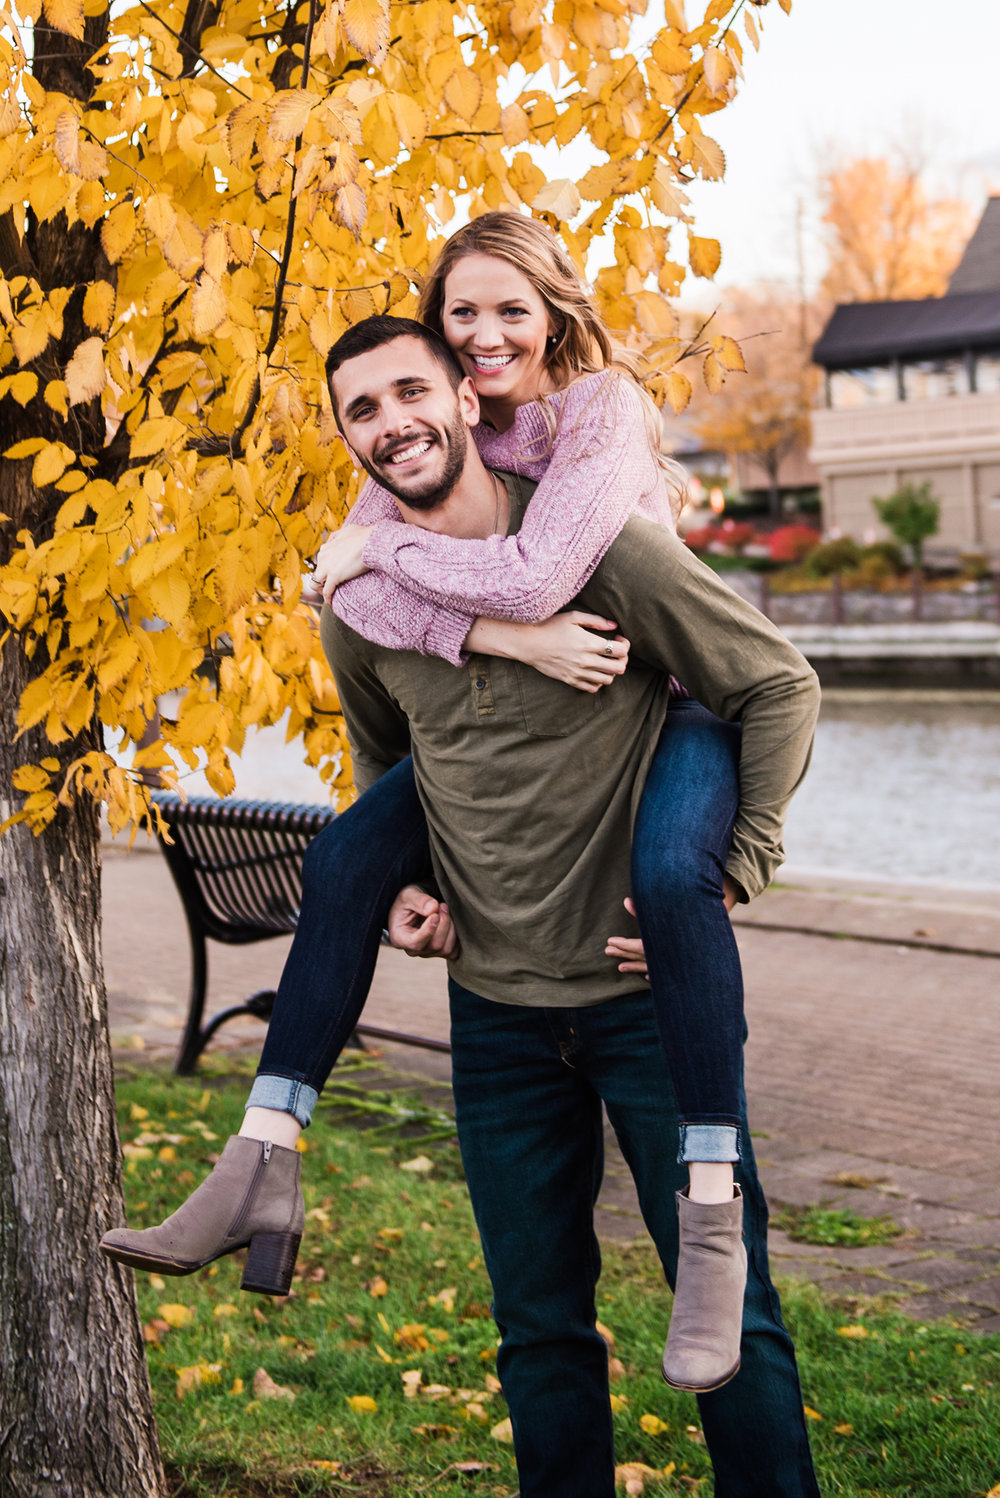 Village_of_Fairport_Rochester_Engagement_Session_JILL_STUDIO_Rochester_NY_Photographer_DSC_8696.jpg